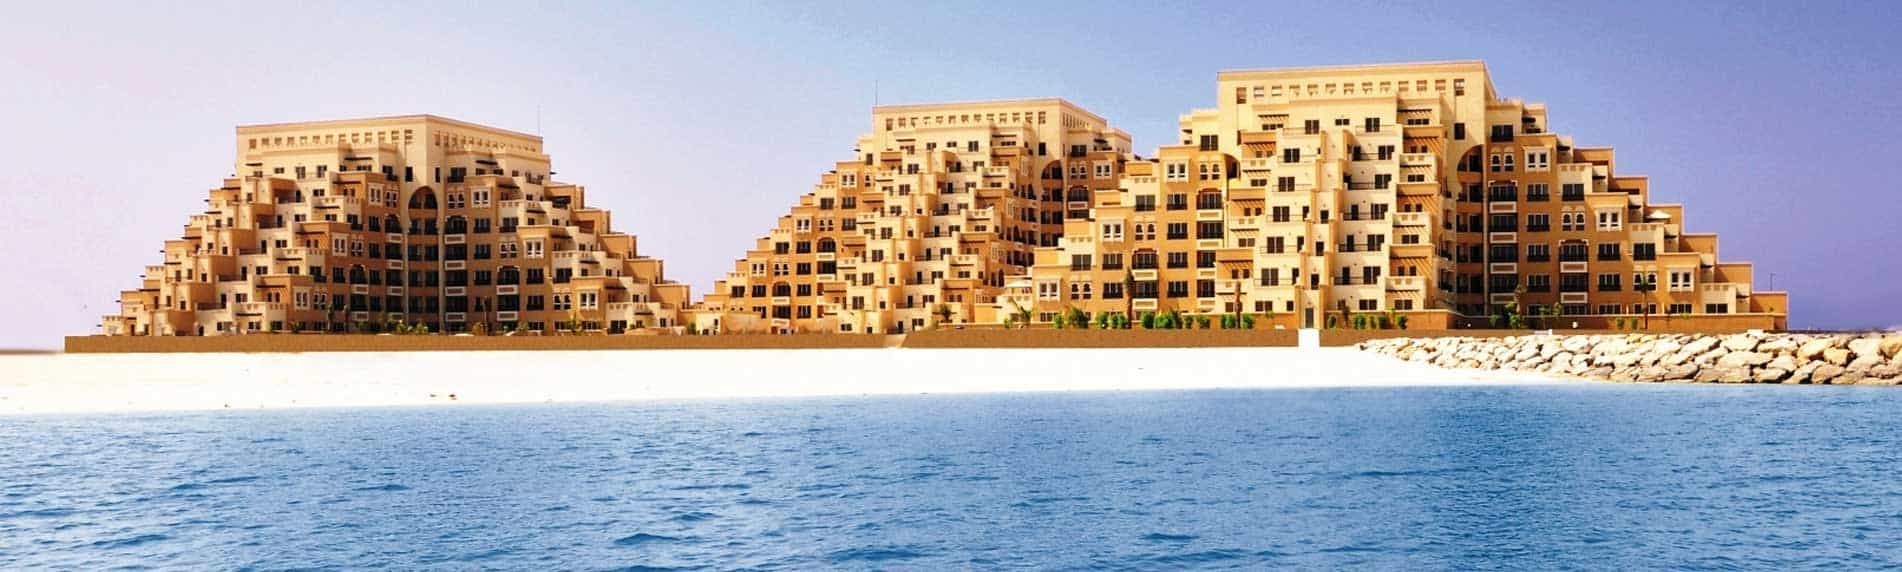 Ras Al Khaimah City Tour